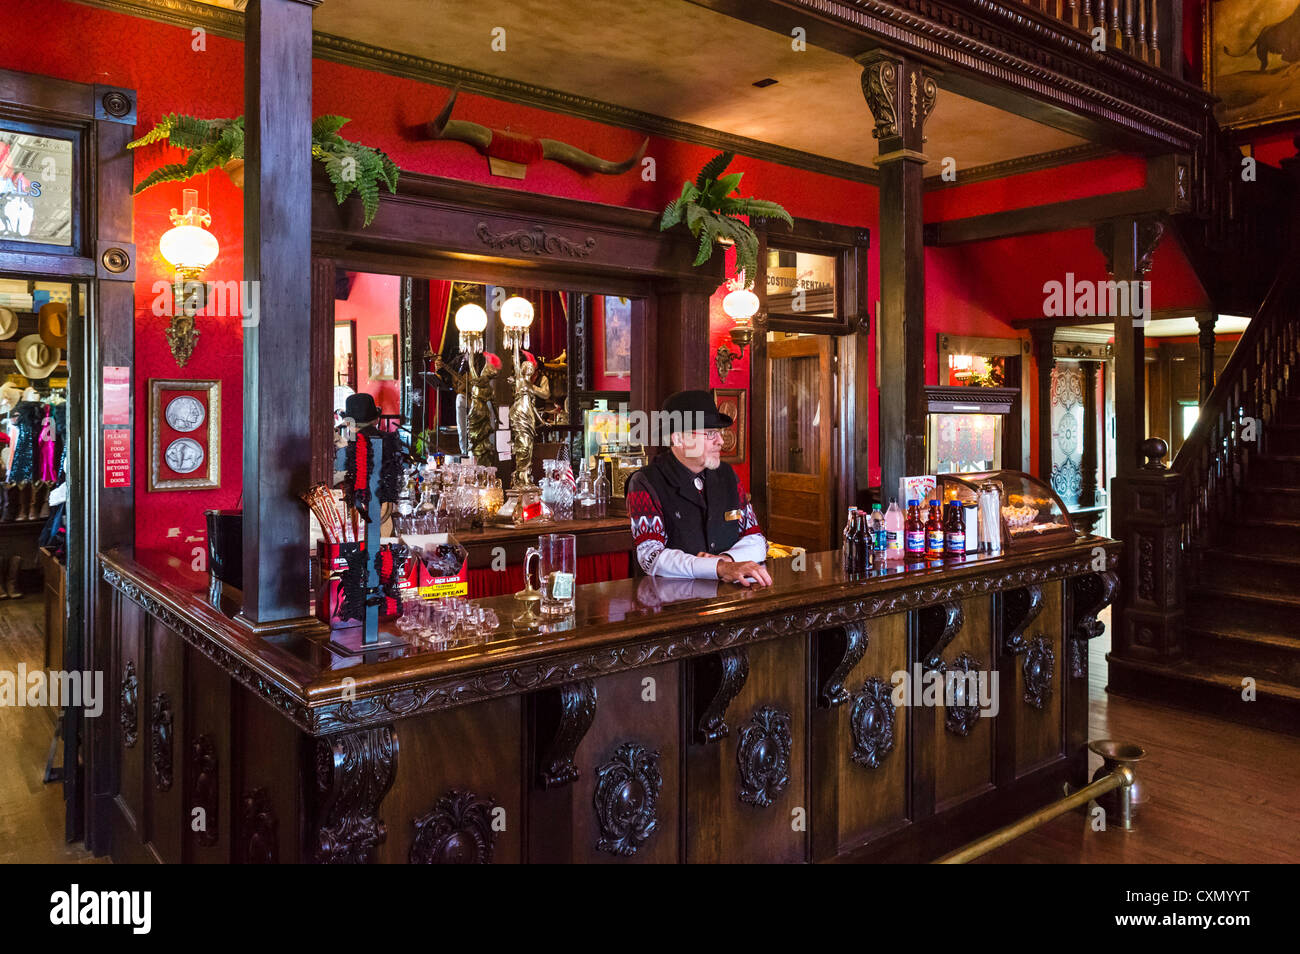 Barman in the saloon on Main Street, '1880 Town' western attraction, Murdo, South Dakota, USA - Stock Image